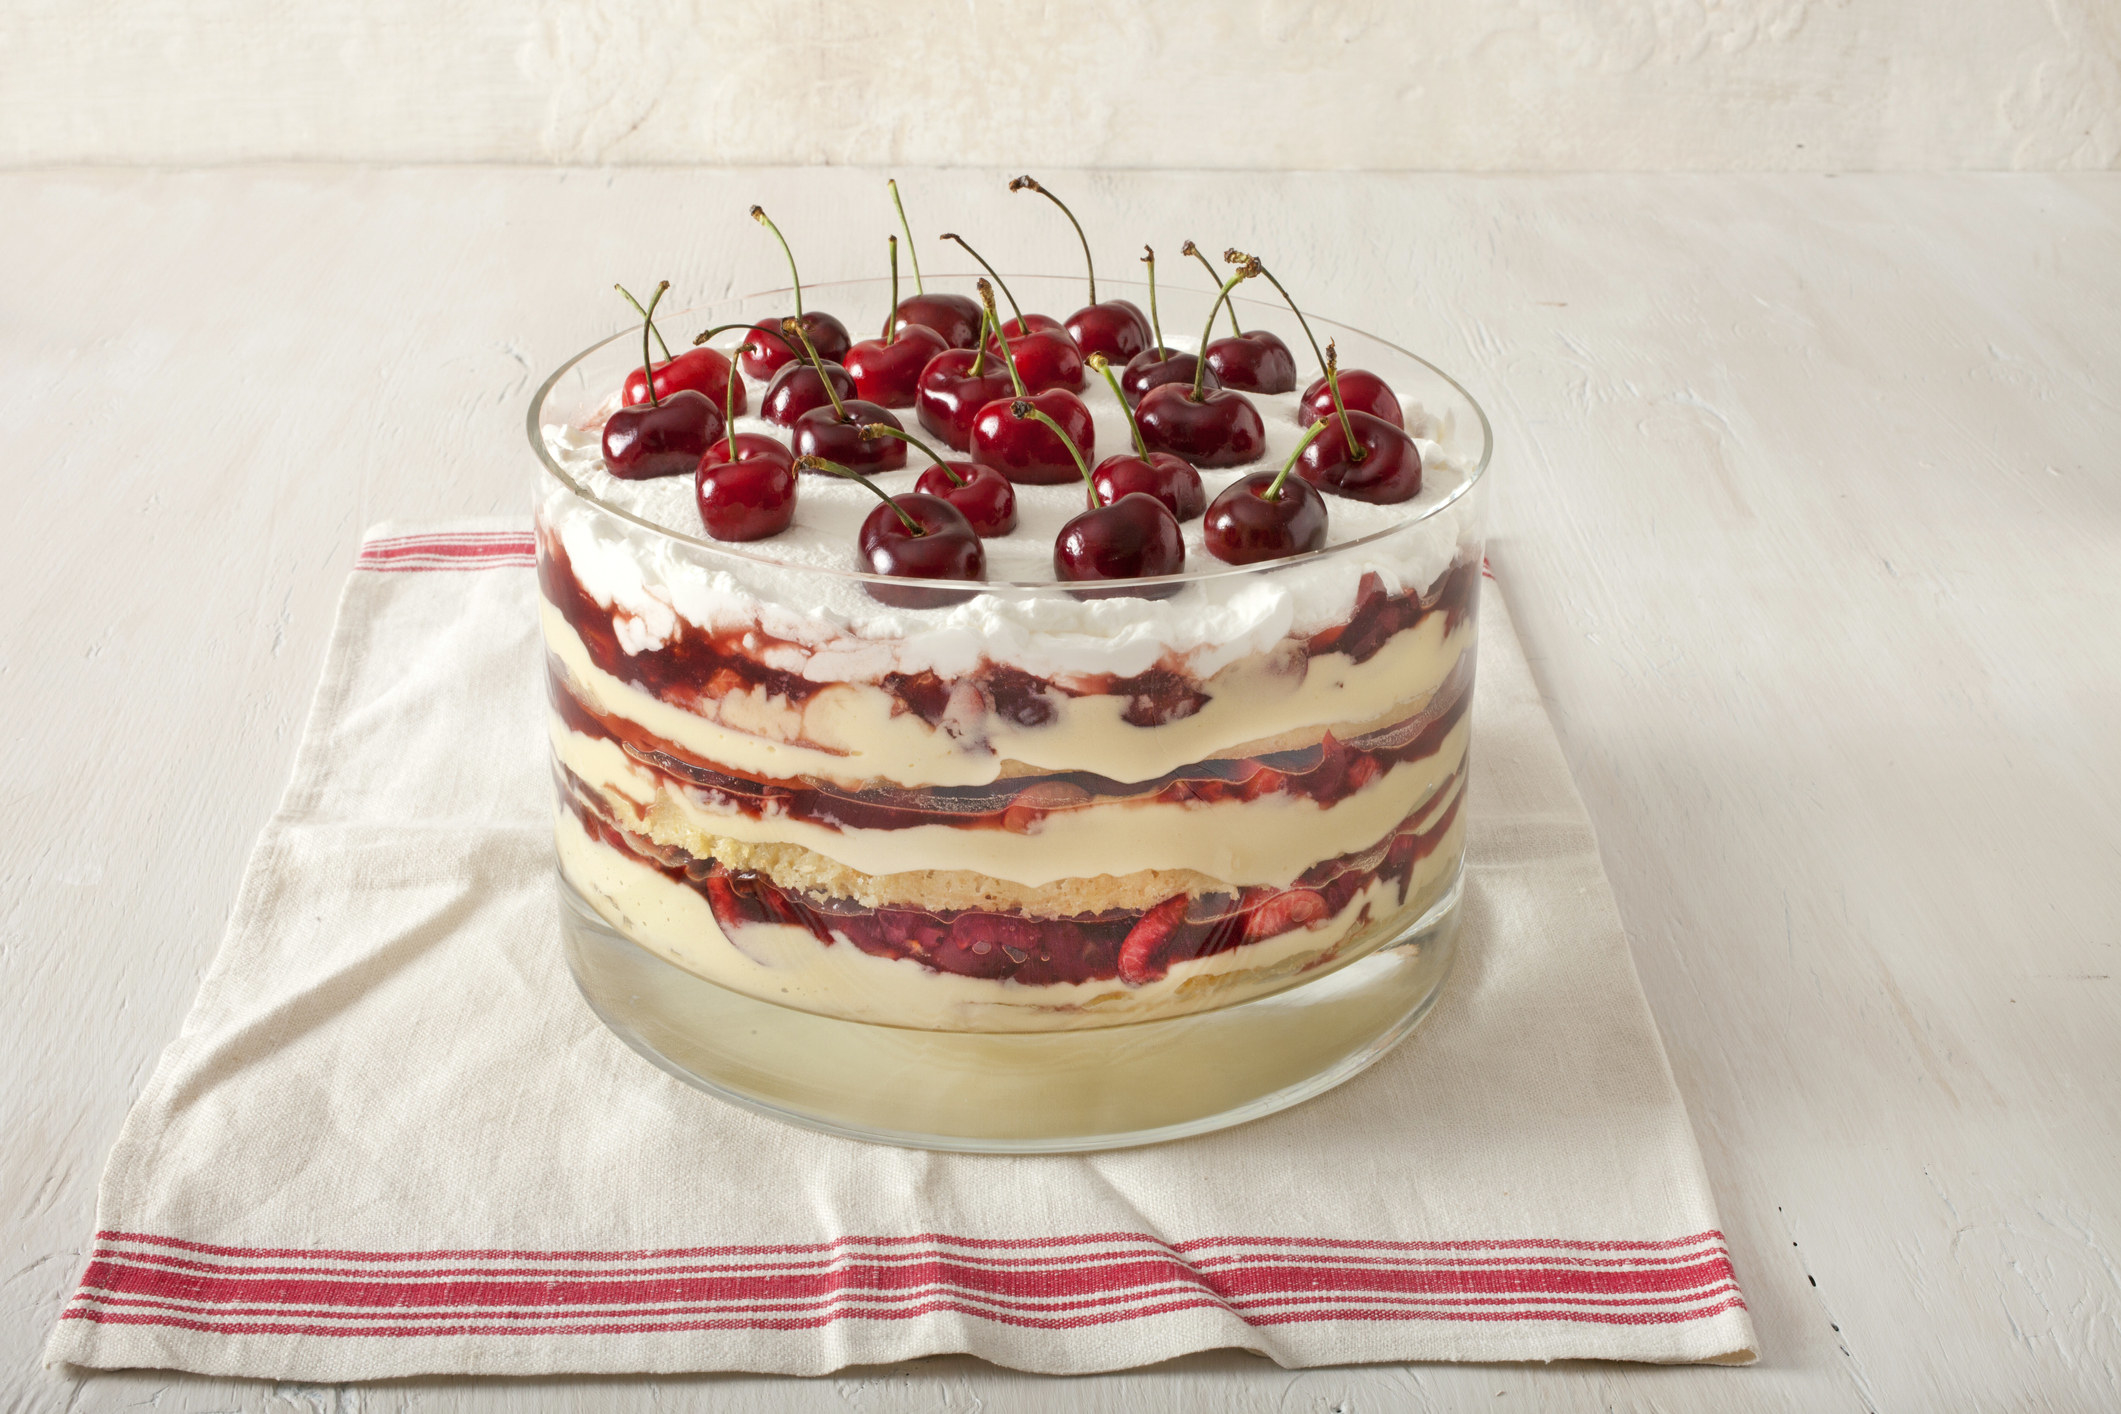 A dessert in a deep bowl with layers of cake, berries, and custard with a layer of cream and cherries on top